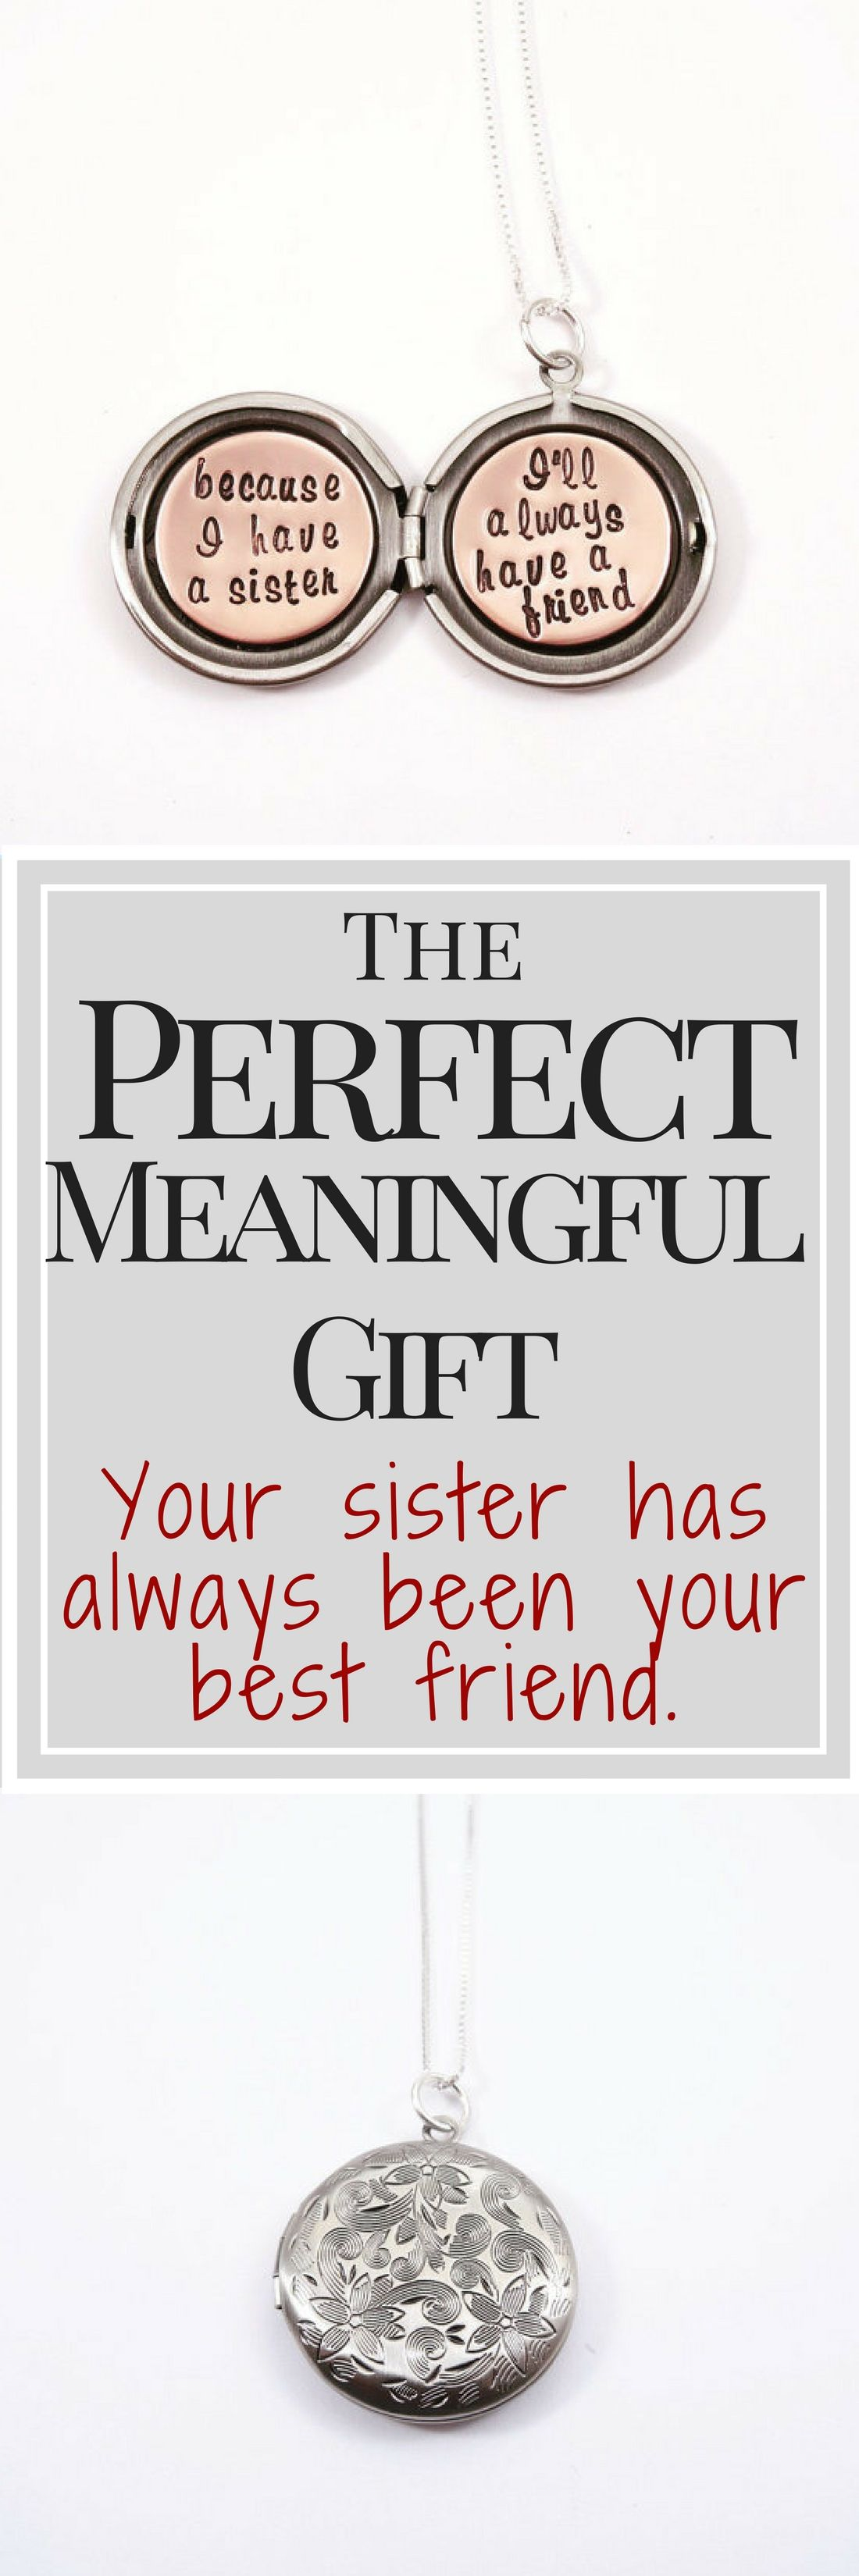 Your sister has always been your best friend celebrate your love